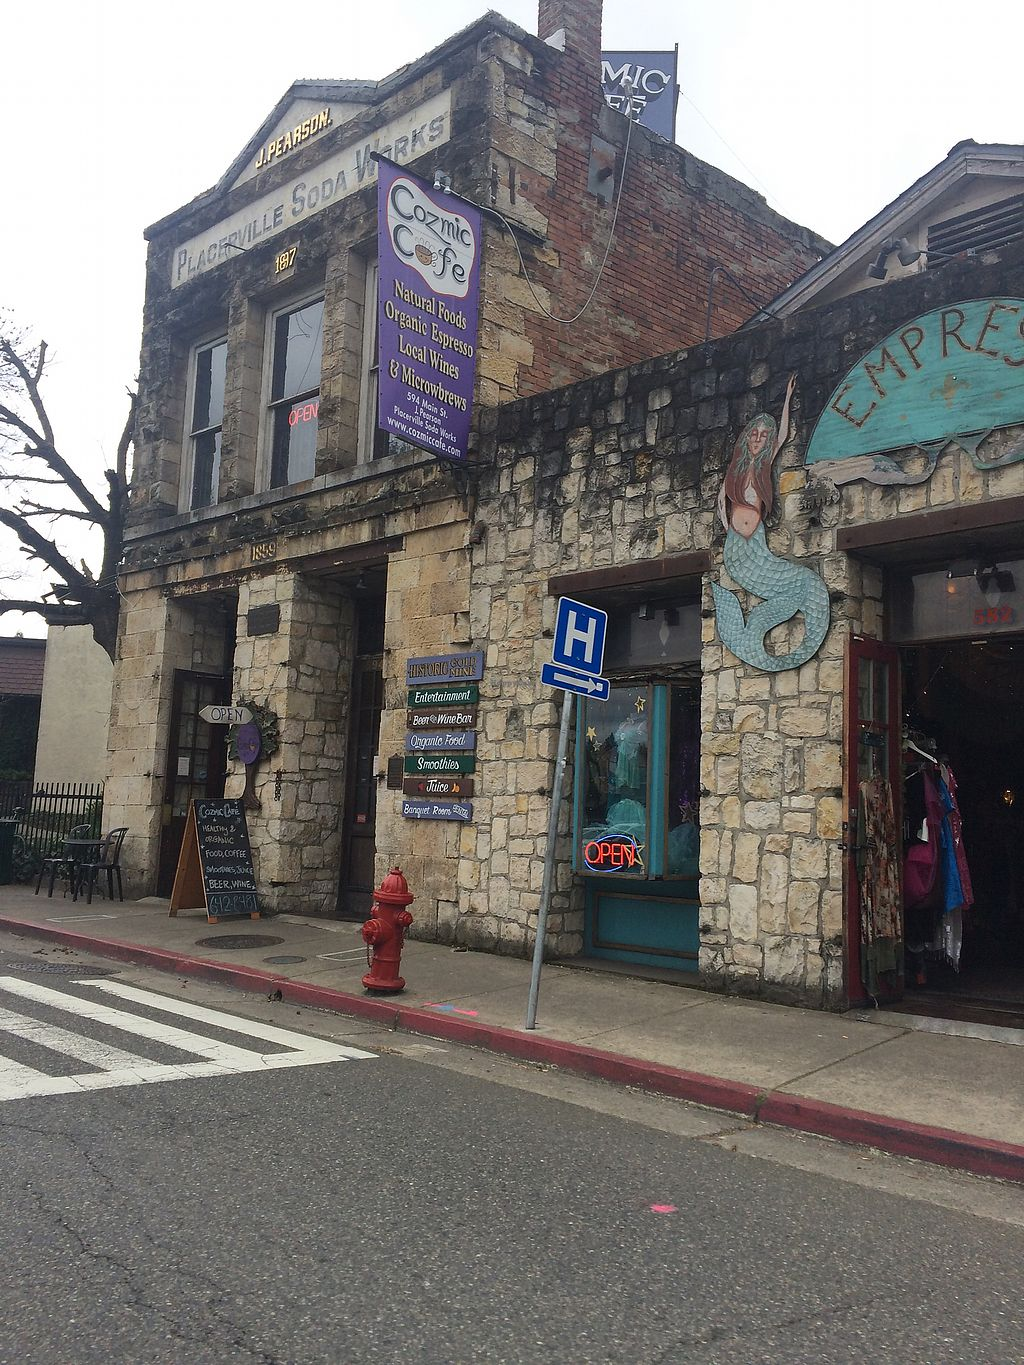 """Photo of The Cozmic Cafe and Pub  by <a href=""""/members/profile/alyjo"""">alyjo</a> <br/>Cozmik Café in Historical Building <br/> March 10, 2018  - <a href='/contact/abuse/image/8222/369005'>Report</a>"""